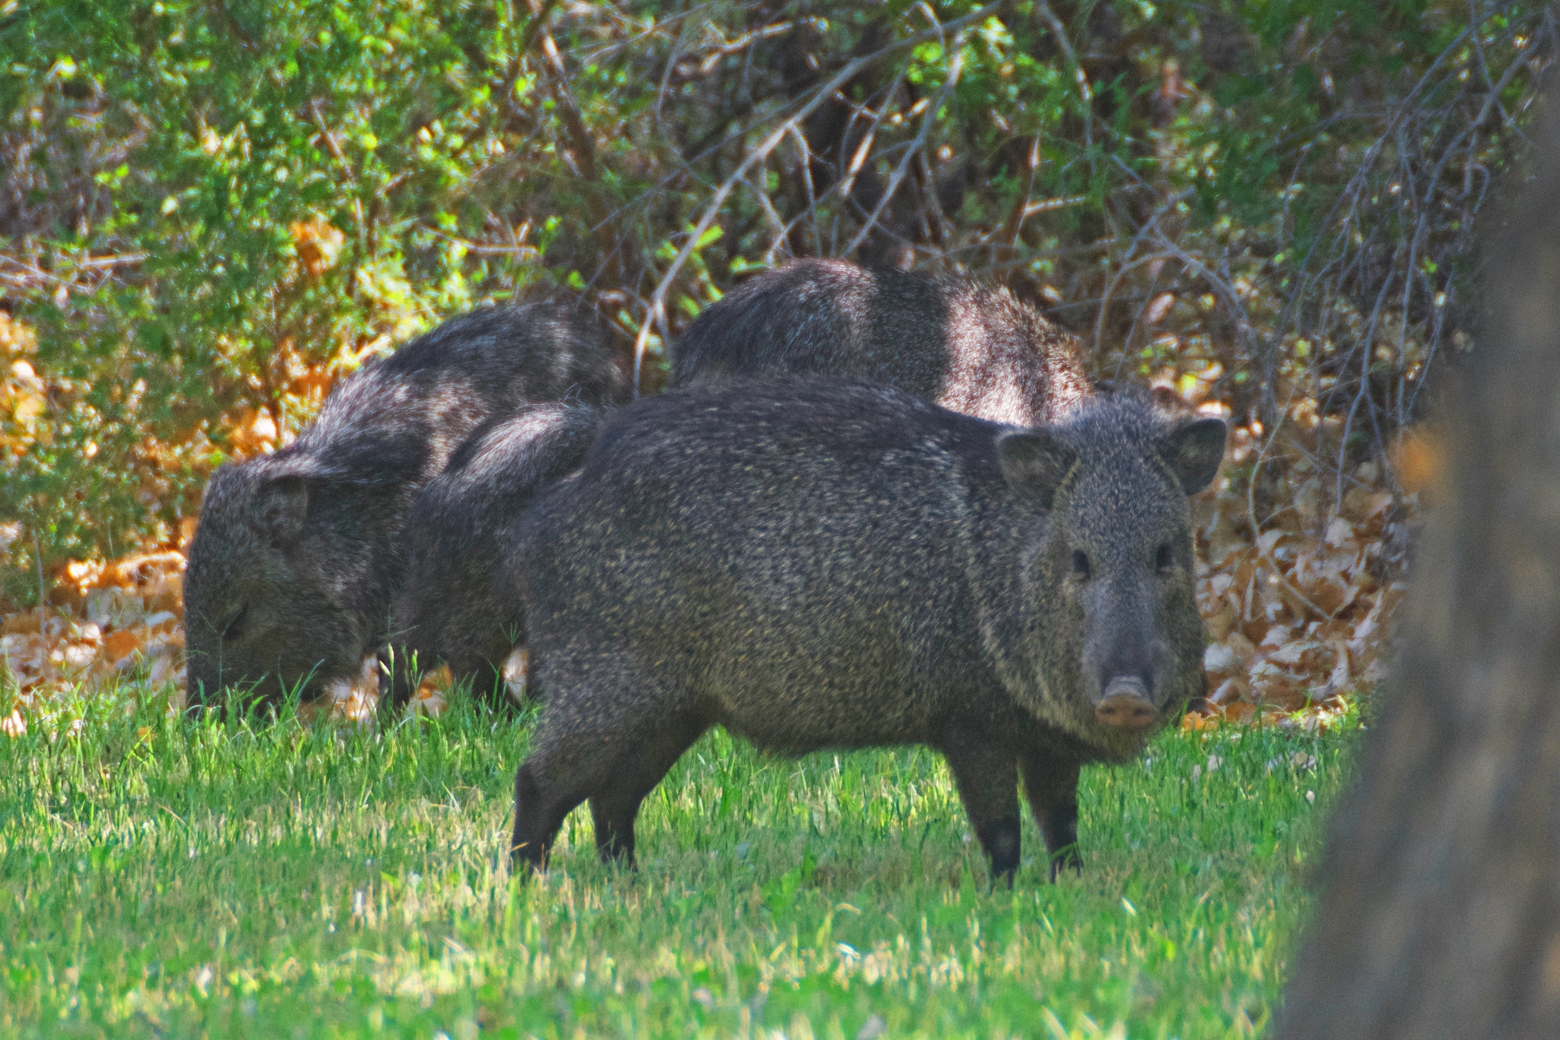 Javelina looking into the camera at Daniels Ranch Picnic Area